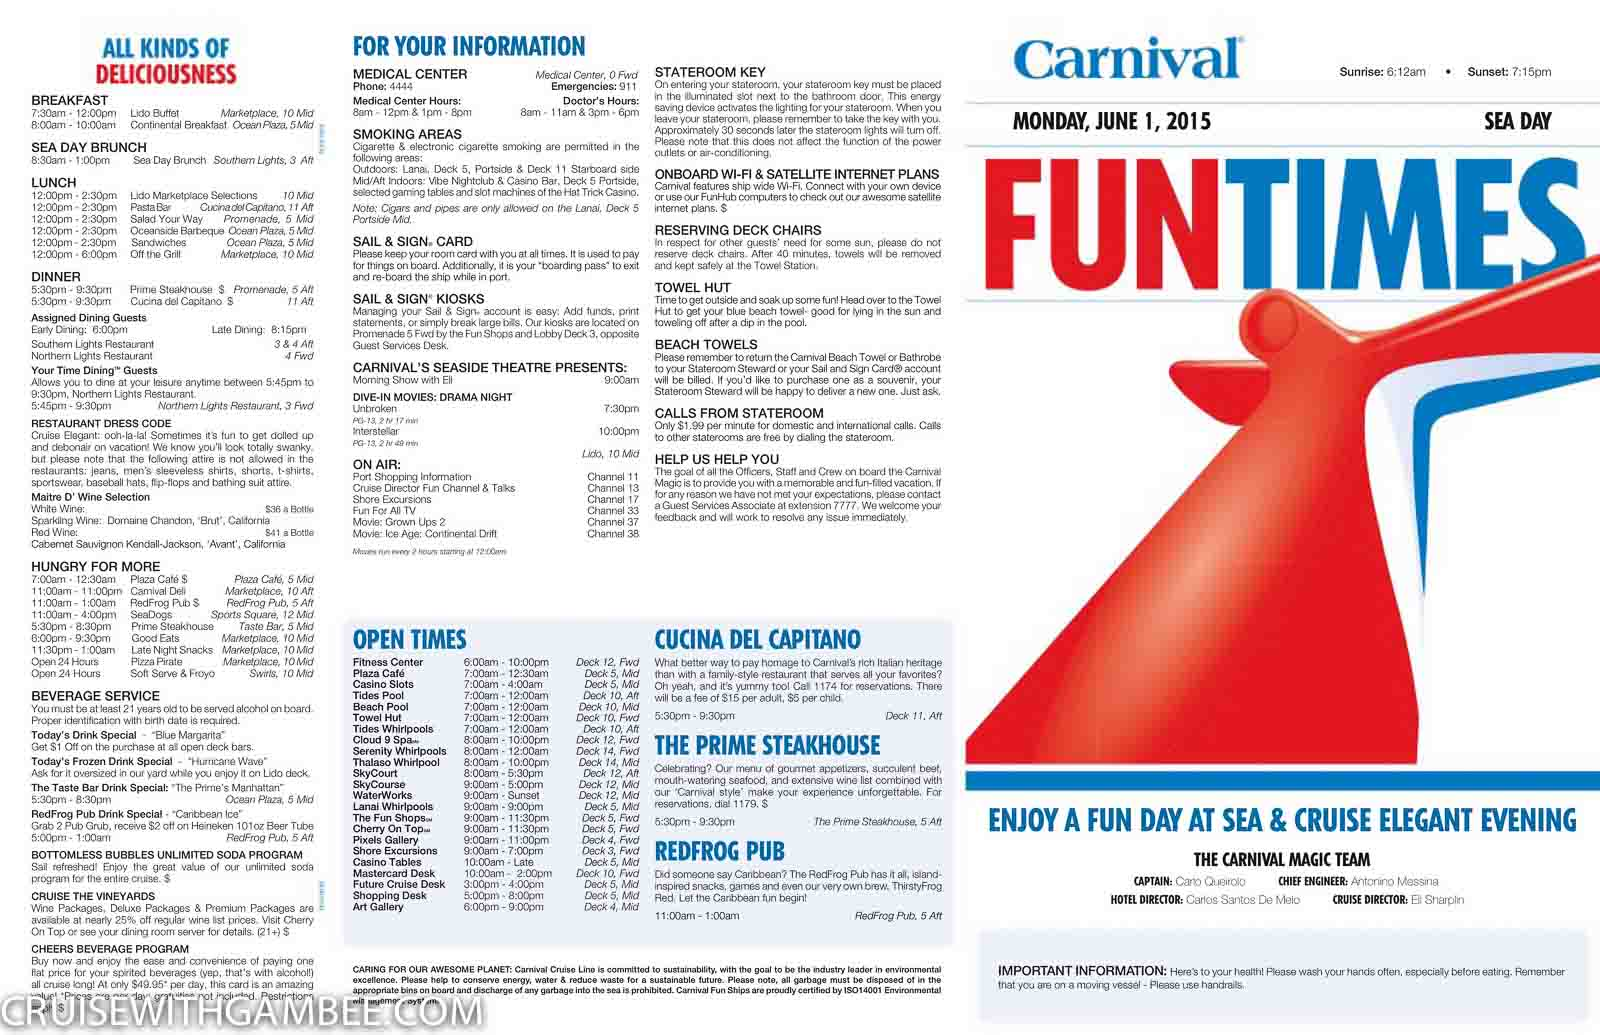 Carnival Magic Funtimes-3